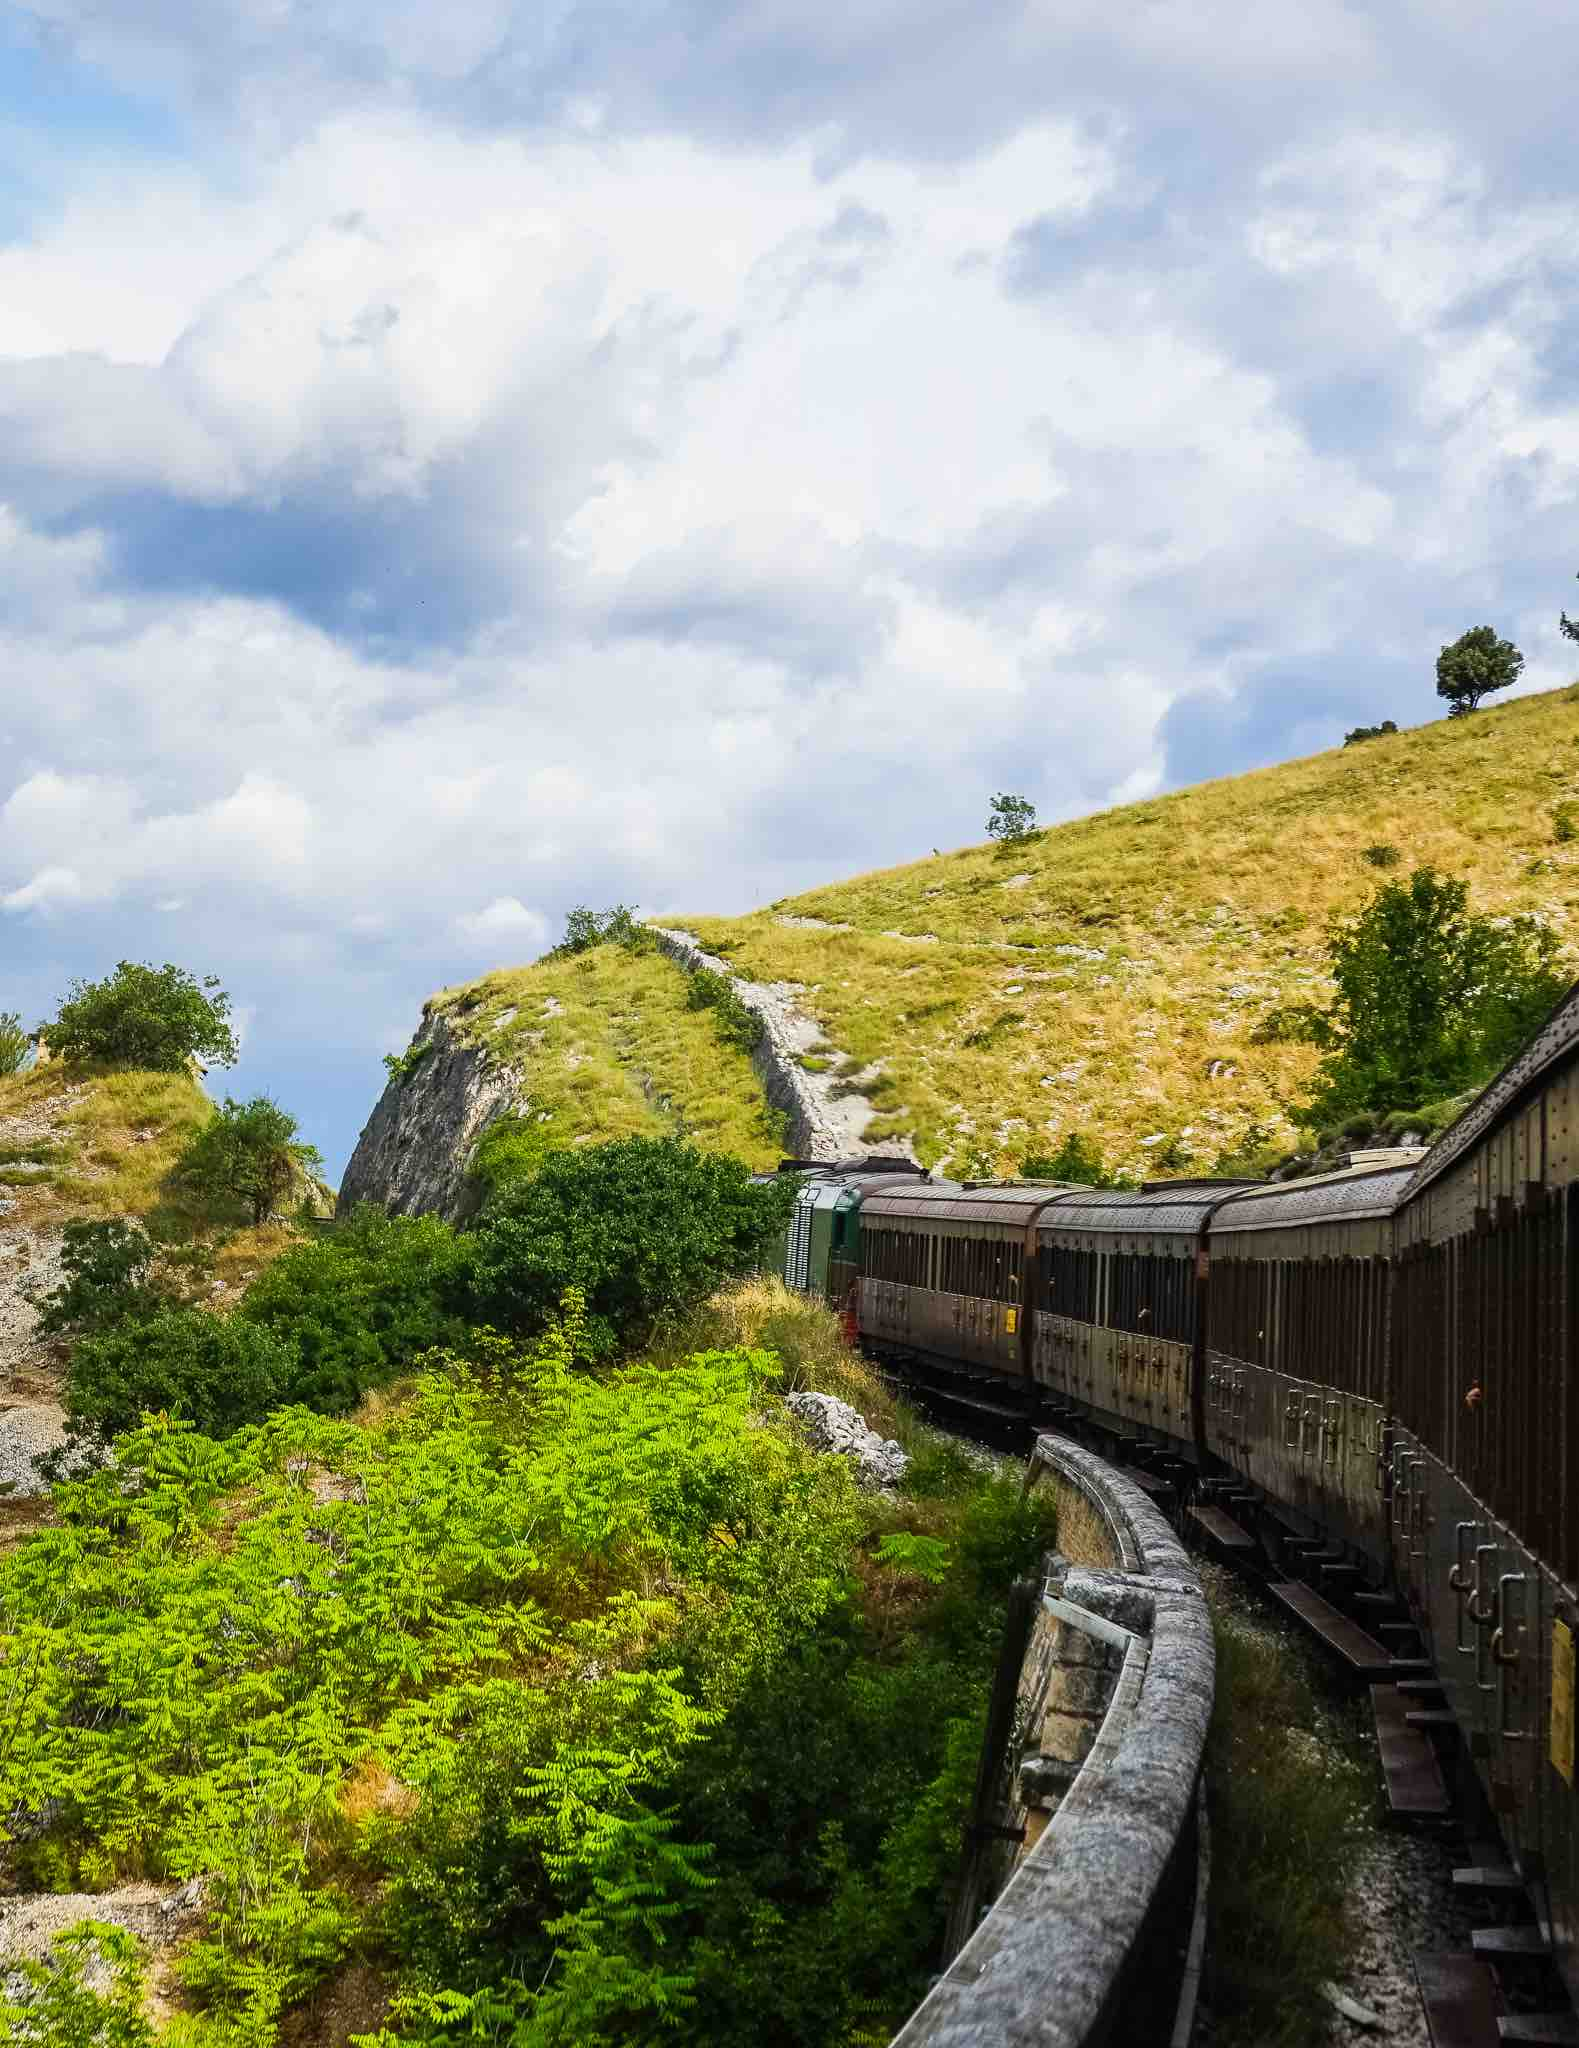 The Italian Trans-Siberian railway running though the majestic natural landscape of Abruzzo and Molise